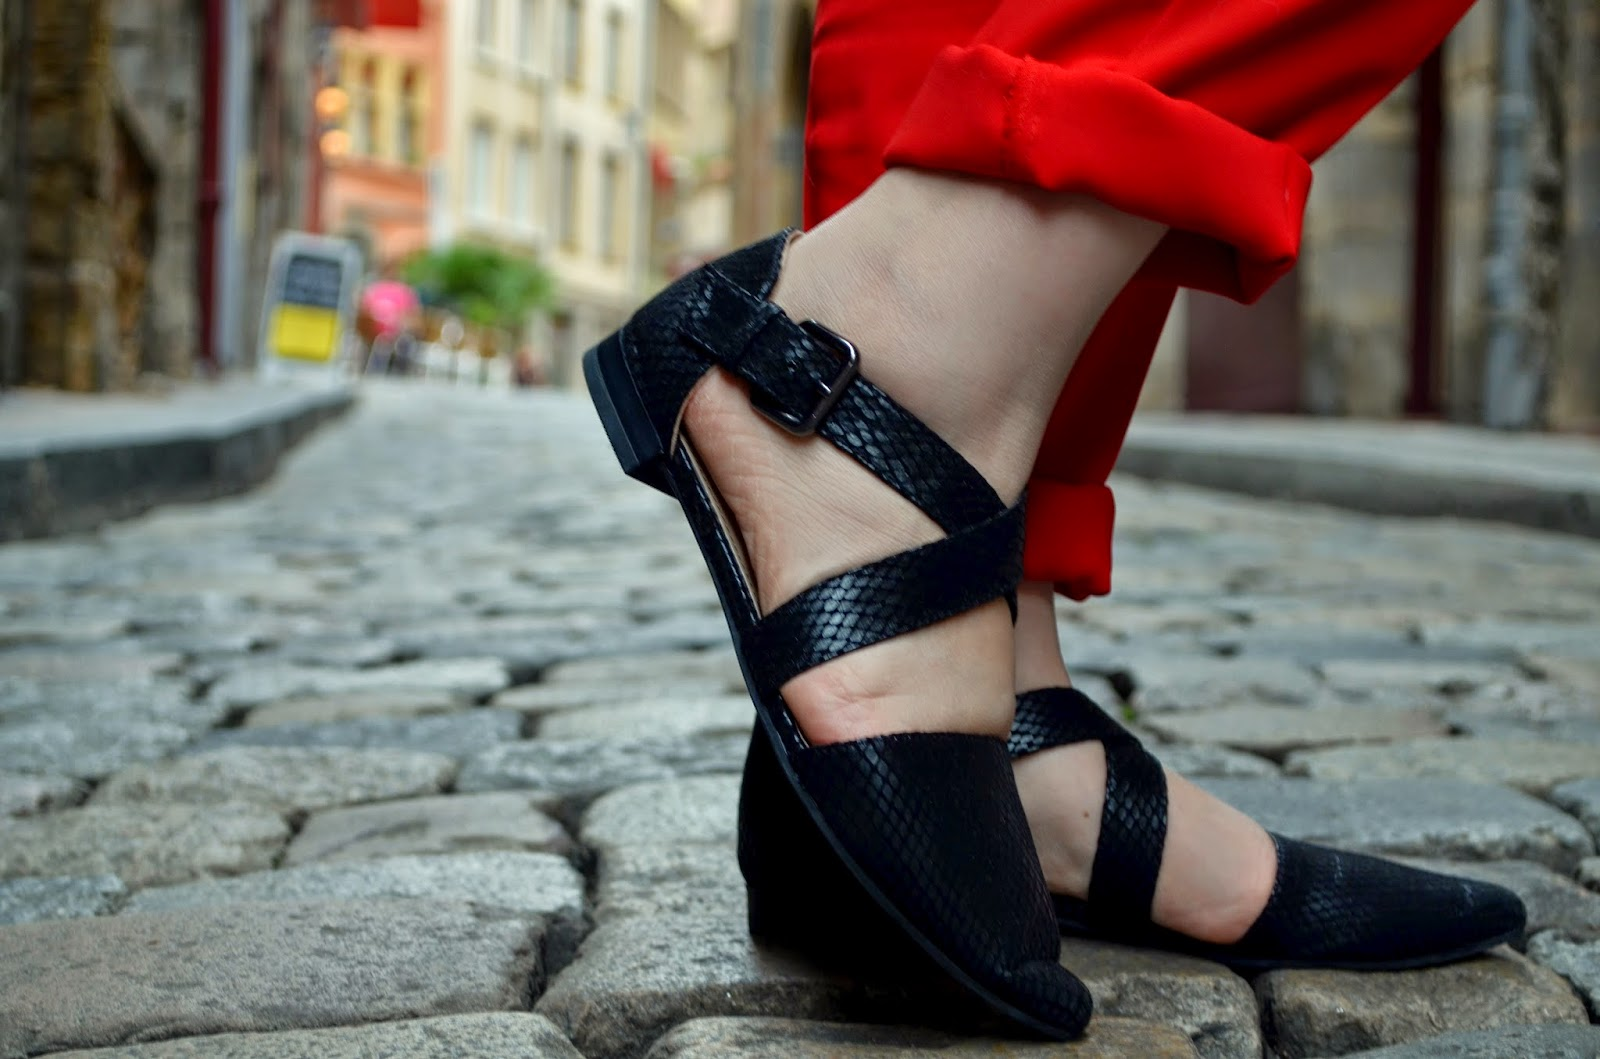 chaussures pull&bear